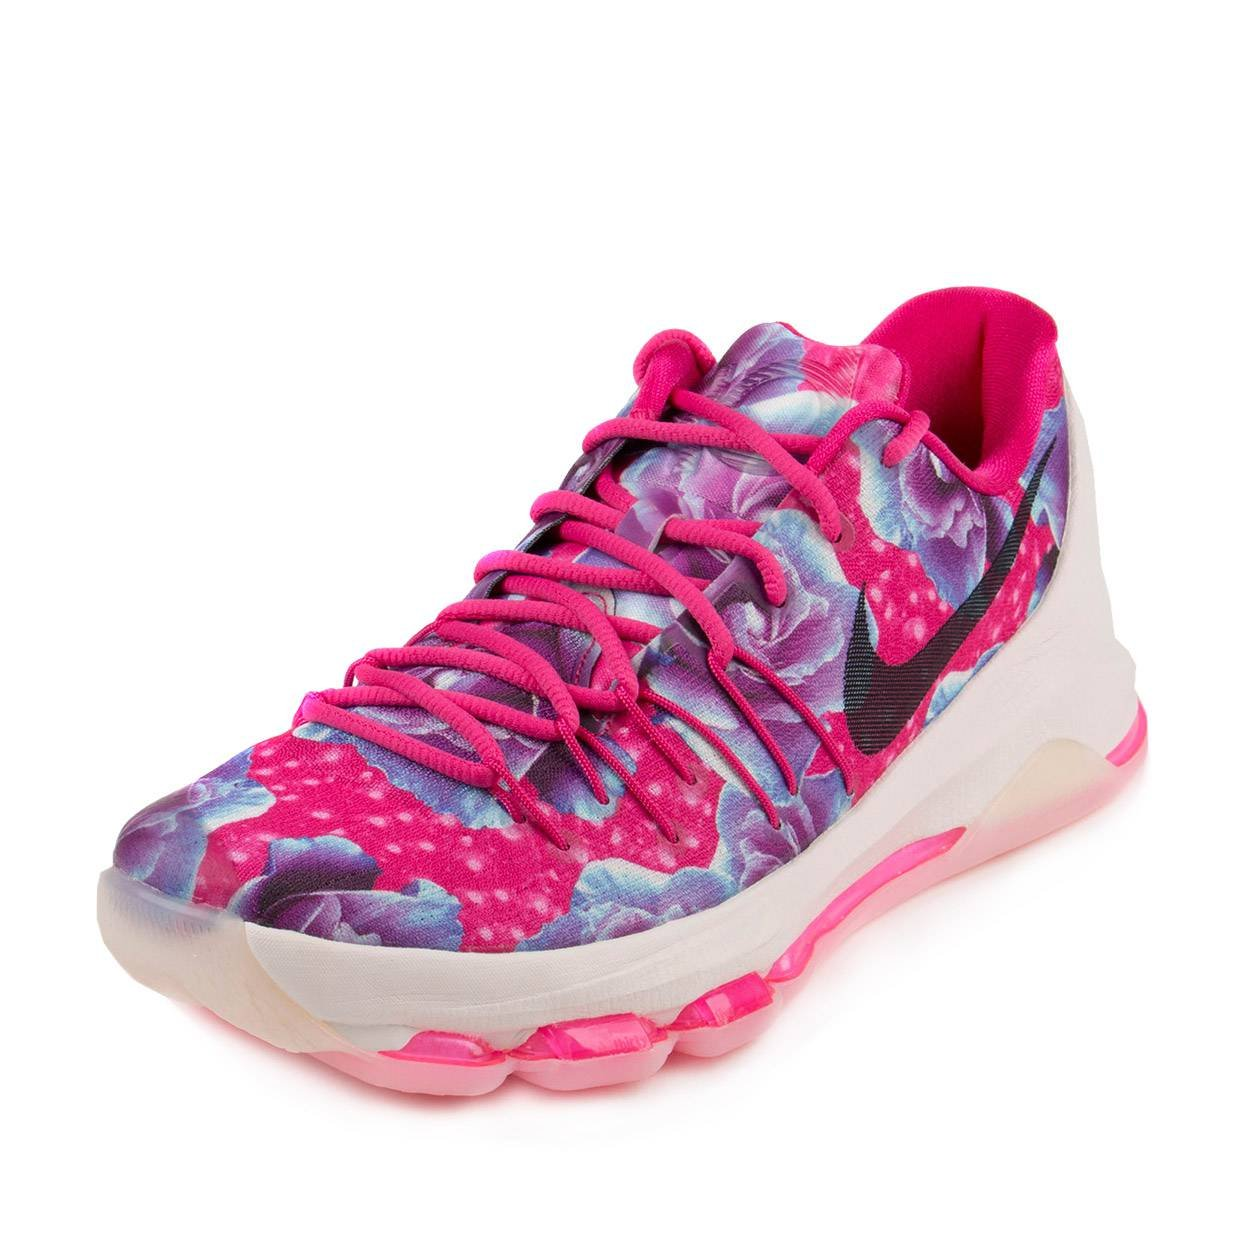 low priced 6e106 dbe83 Nike Mens KD 8 PRM Aunt Pearl Vivid Pink/Black-Phantom Synthetic Size 10.5